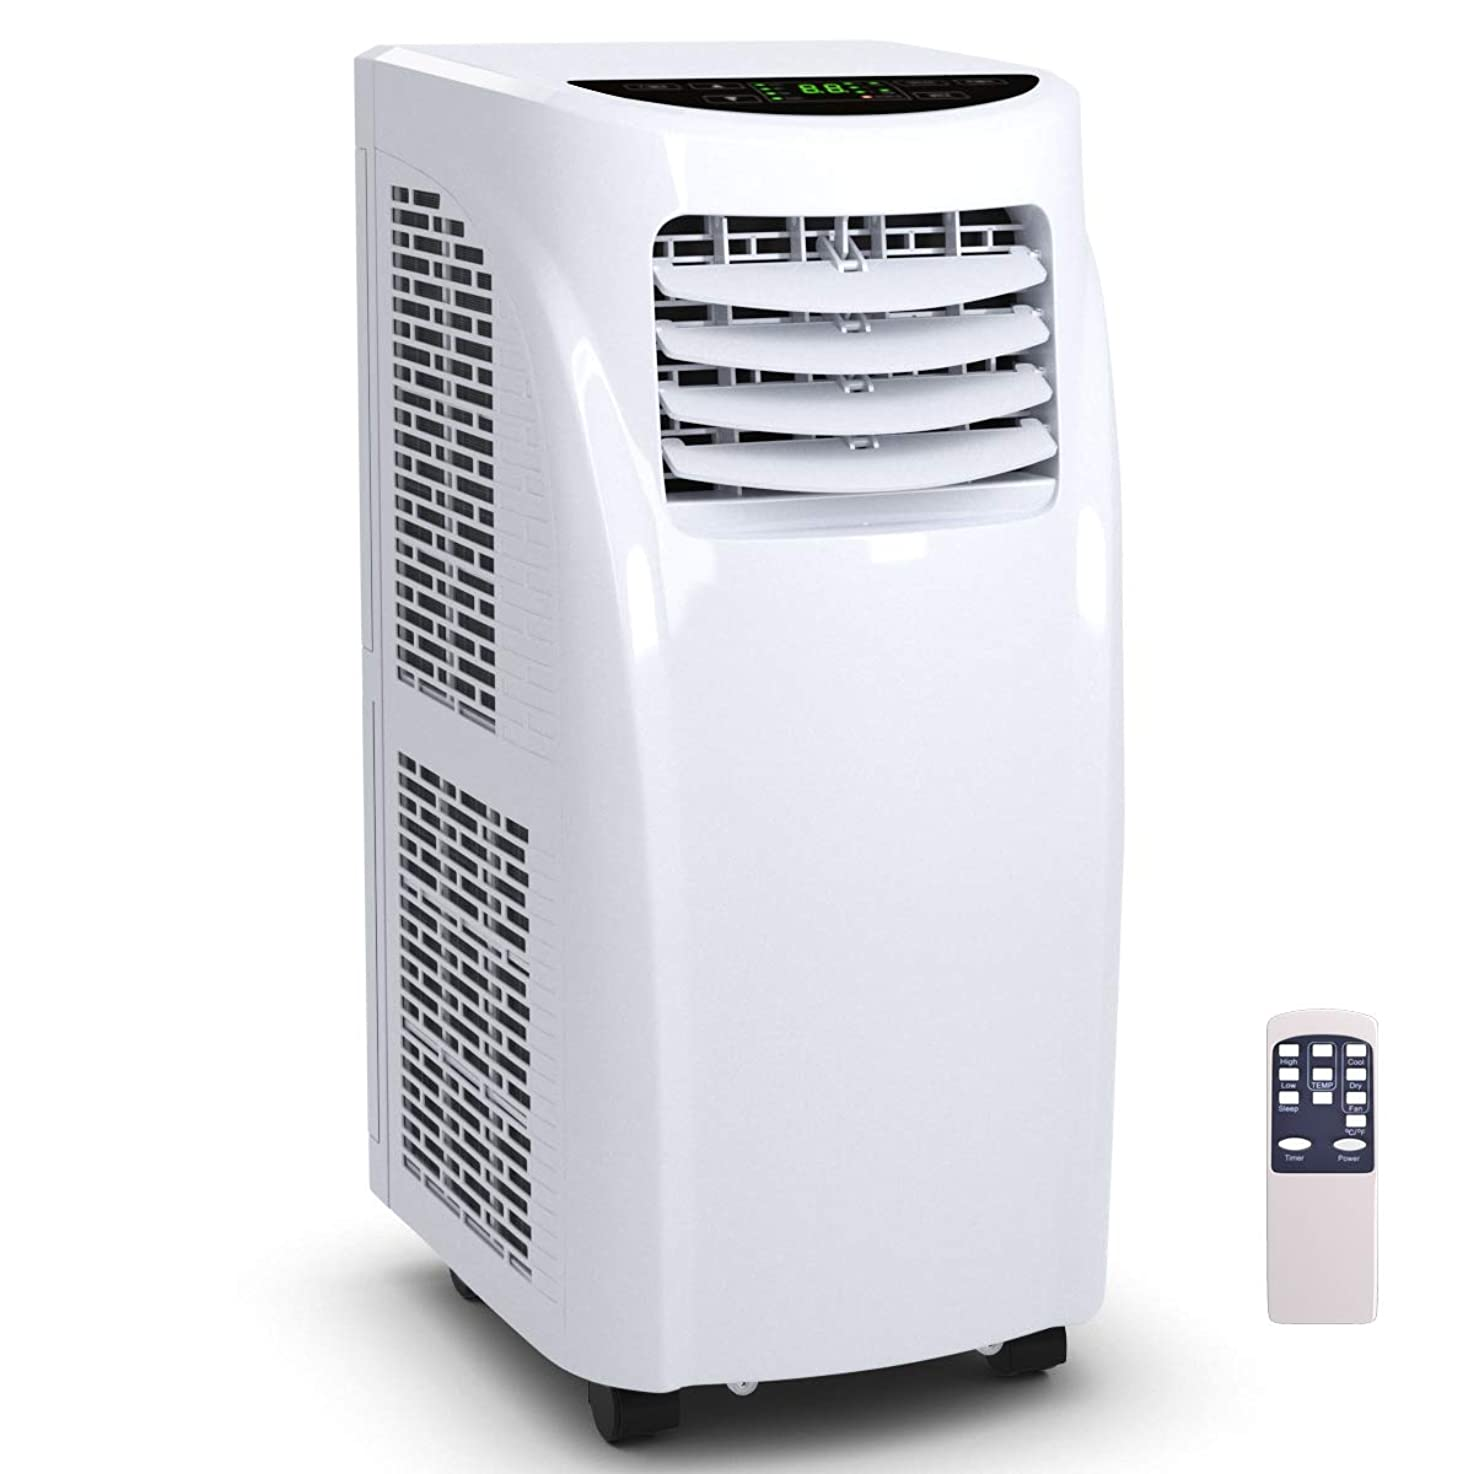 COSTWAY 10000 BTU Air Conditioner, Portable Air Conditioner Unit with Remote Control Dehumidifier Function Window Wall Mount, 4 Caster Wheel, Sleep Mode and 2 Fan Speed njnijjddnwjev8